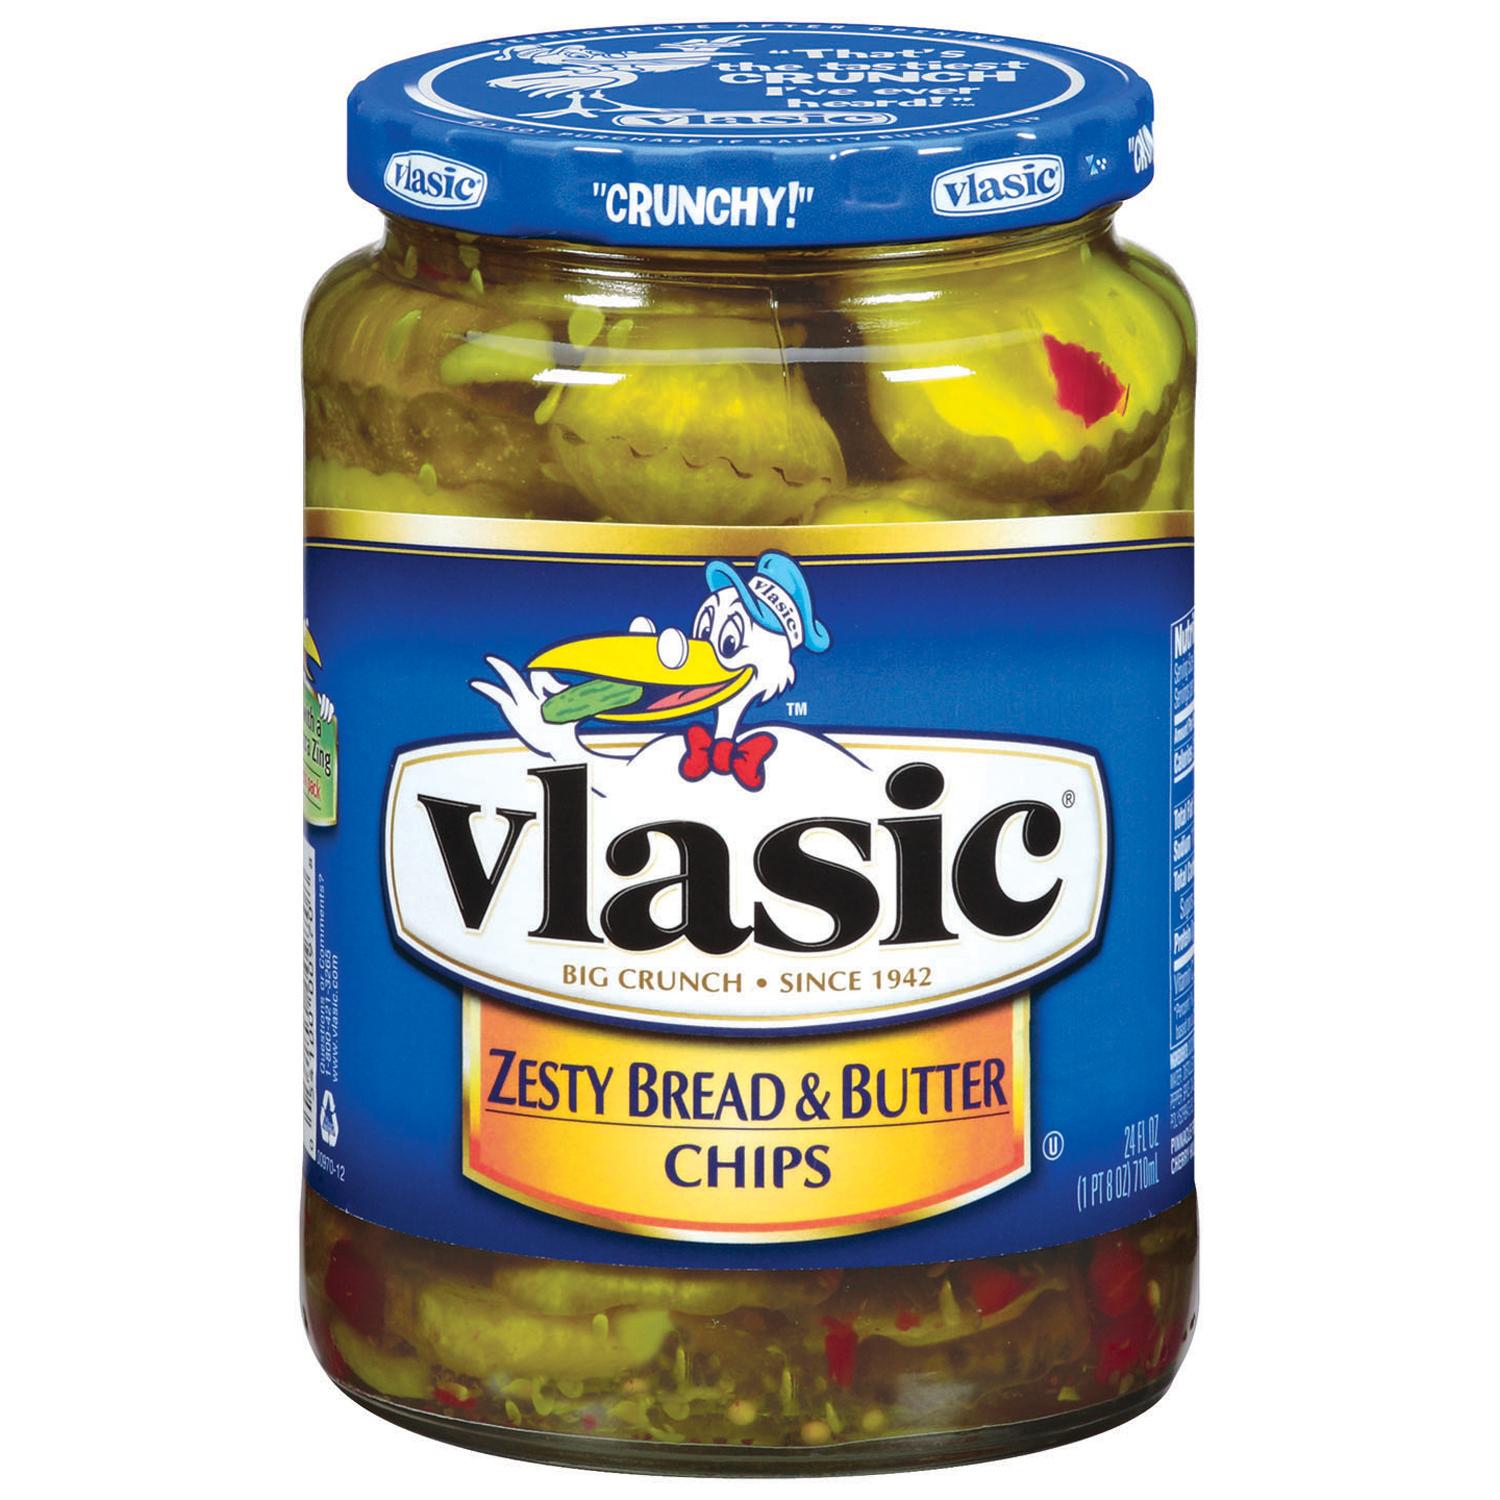 Vlasic Zesty Bread & Butter Chips Pickles 24 Fl Oz Jar